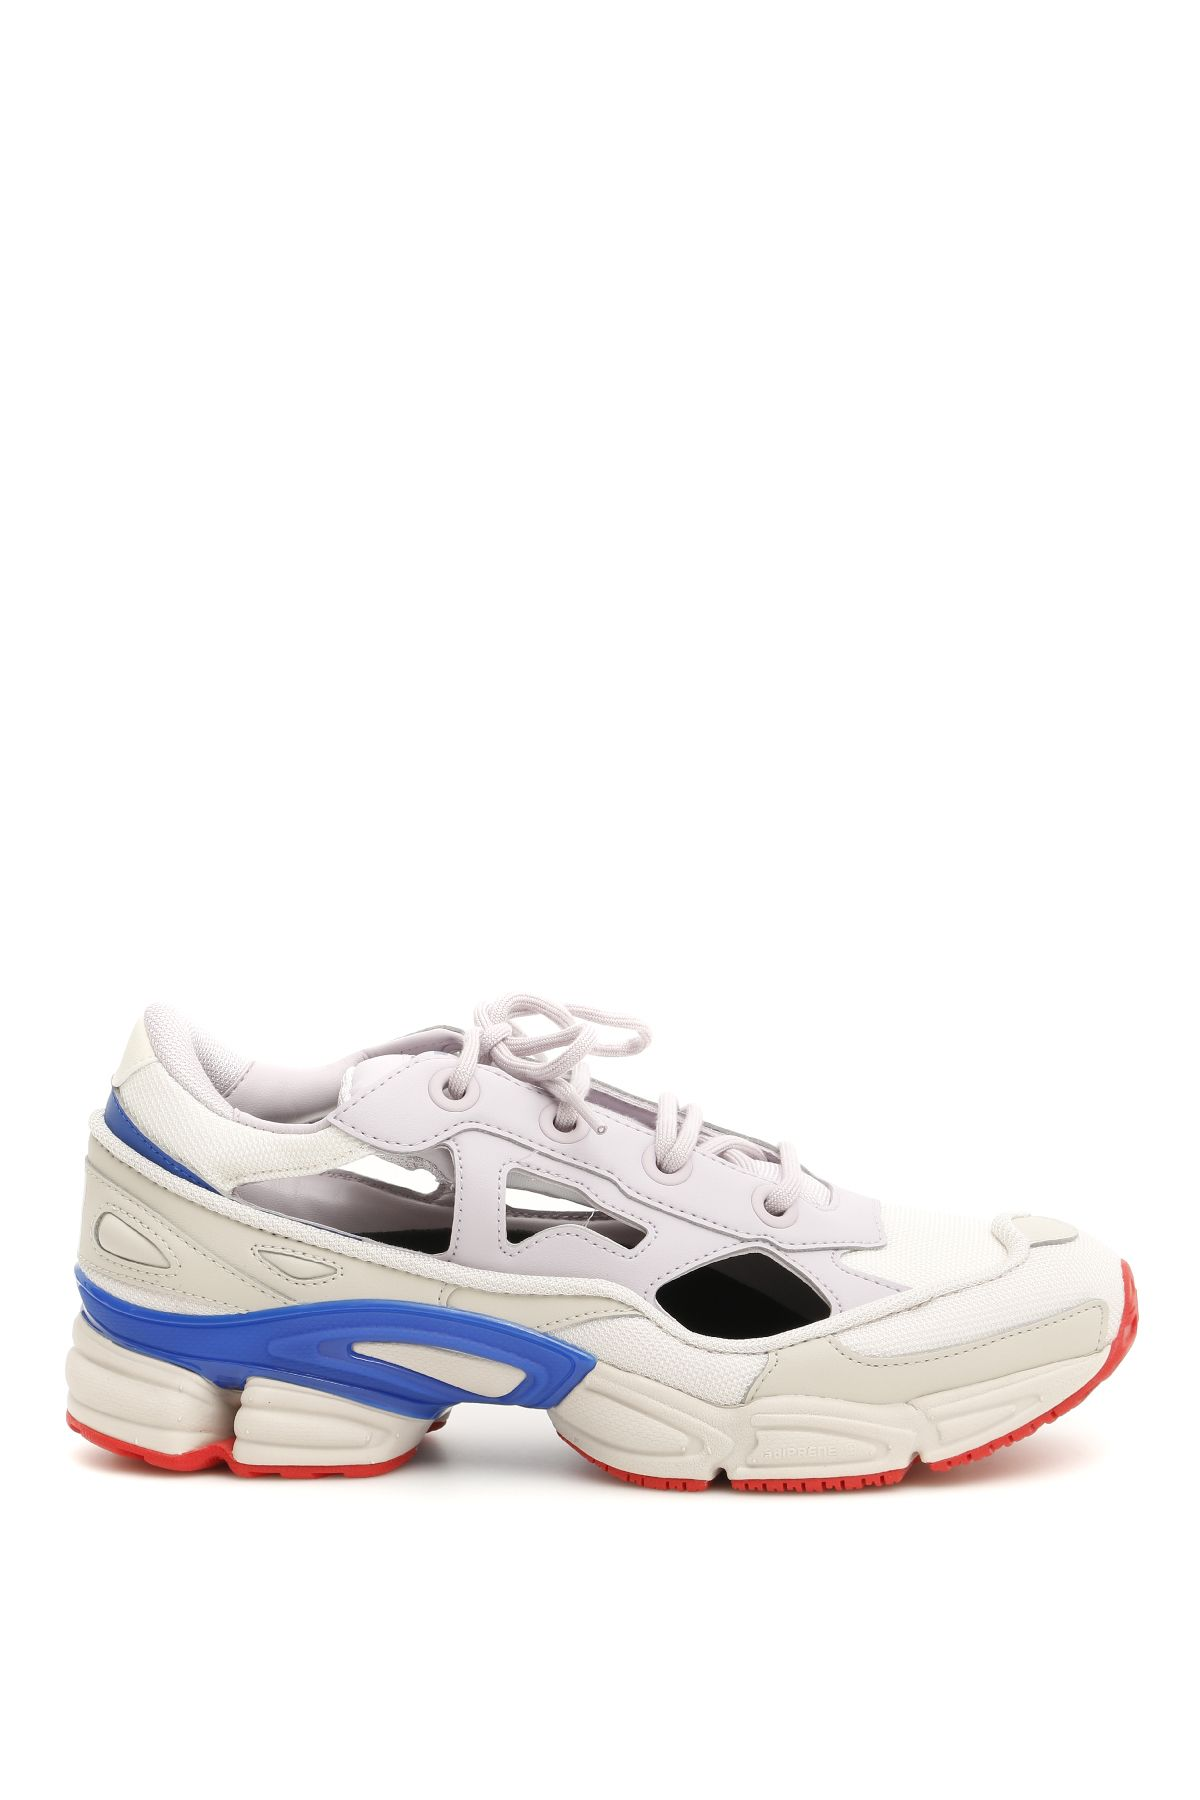 Adidas By Ozweego Raf Simons Replicant Ozweego By Sneakers In CBrun CBrun d5b383